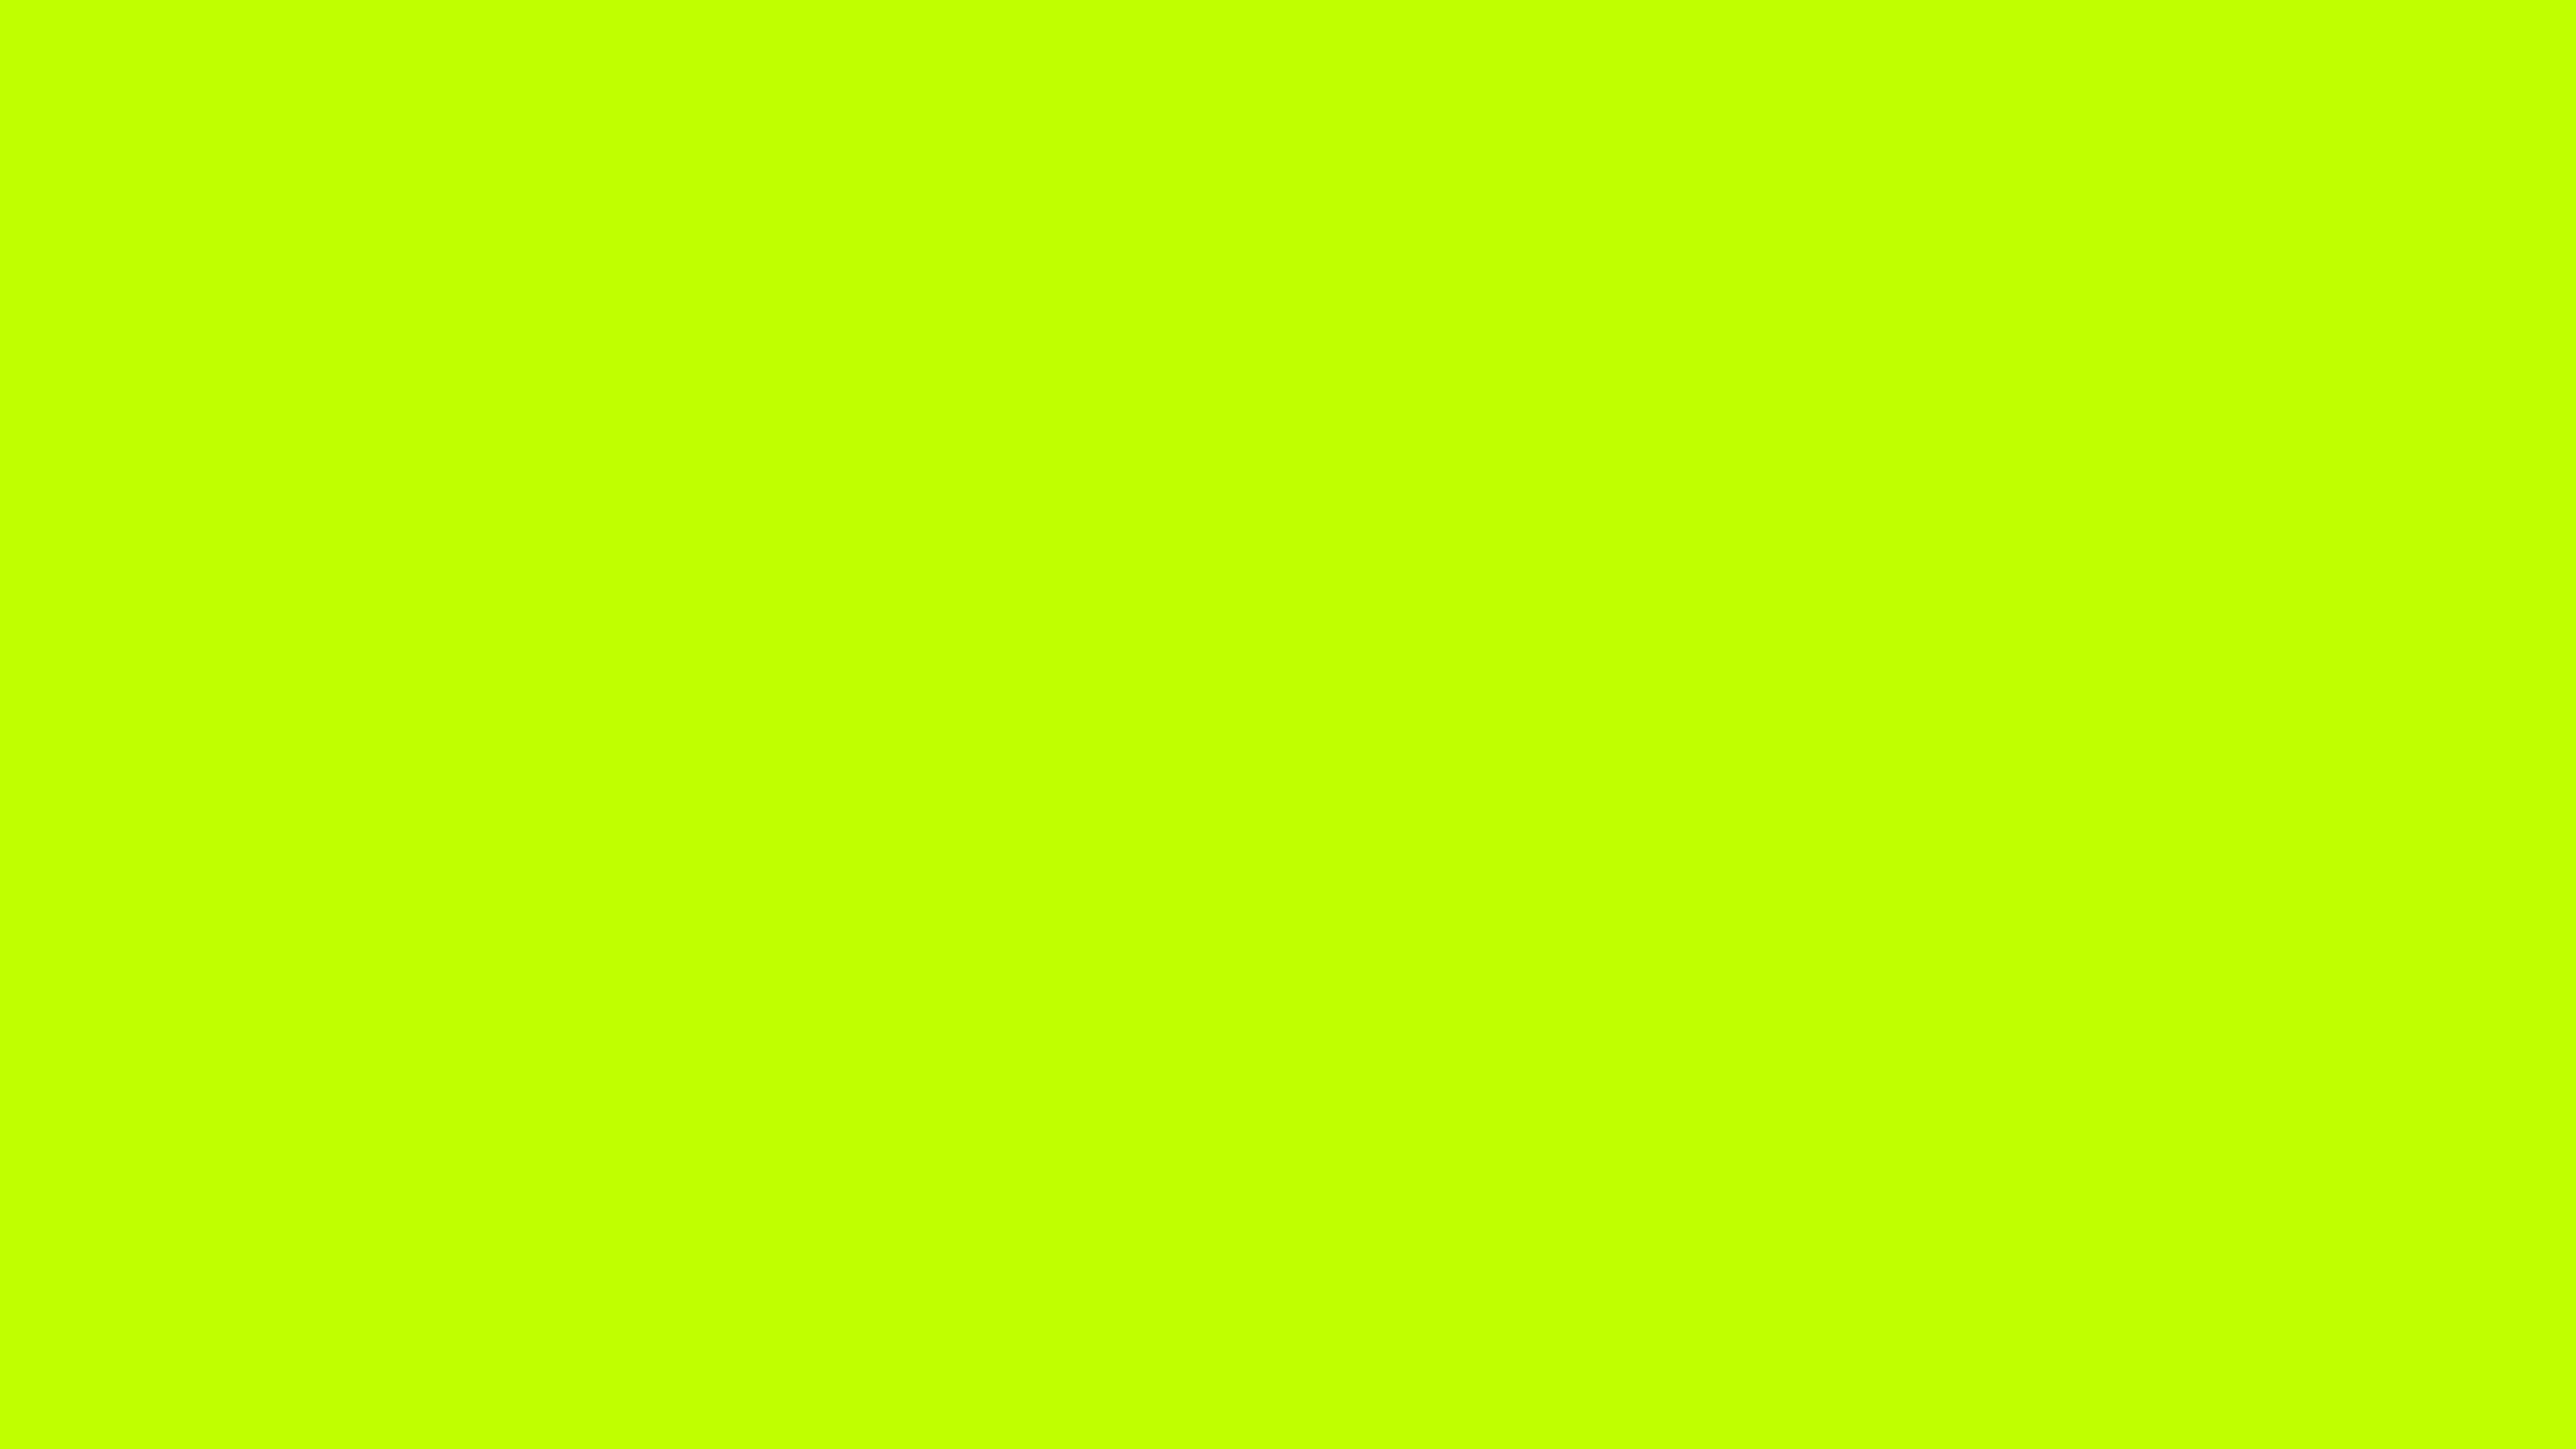 lime color background - photo #37